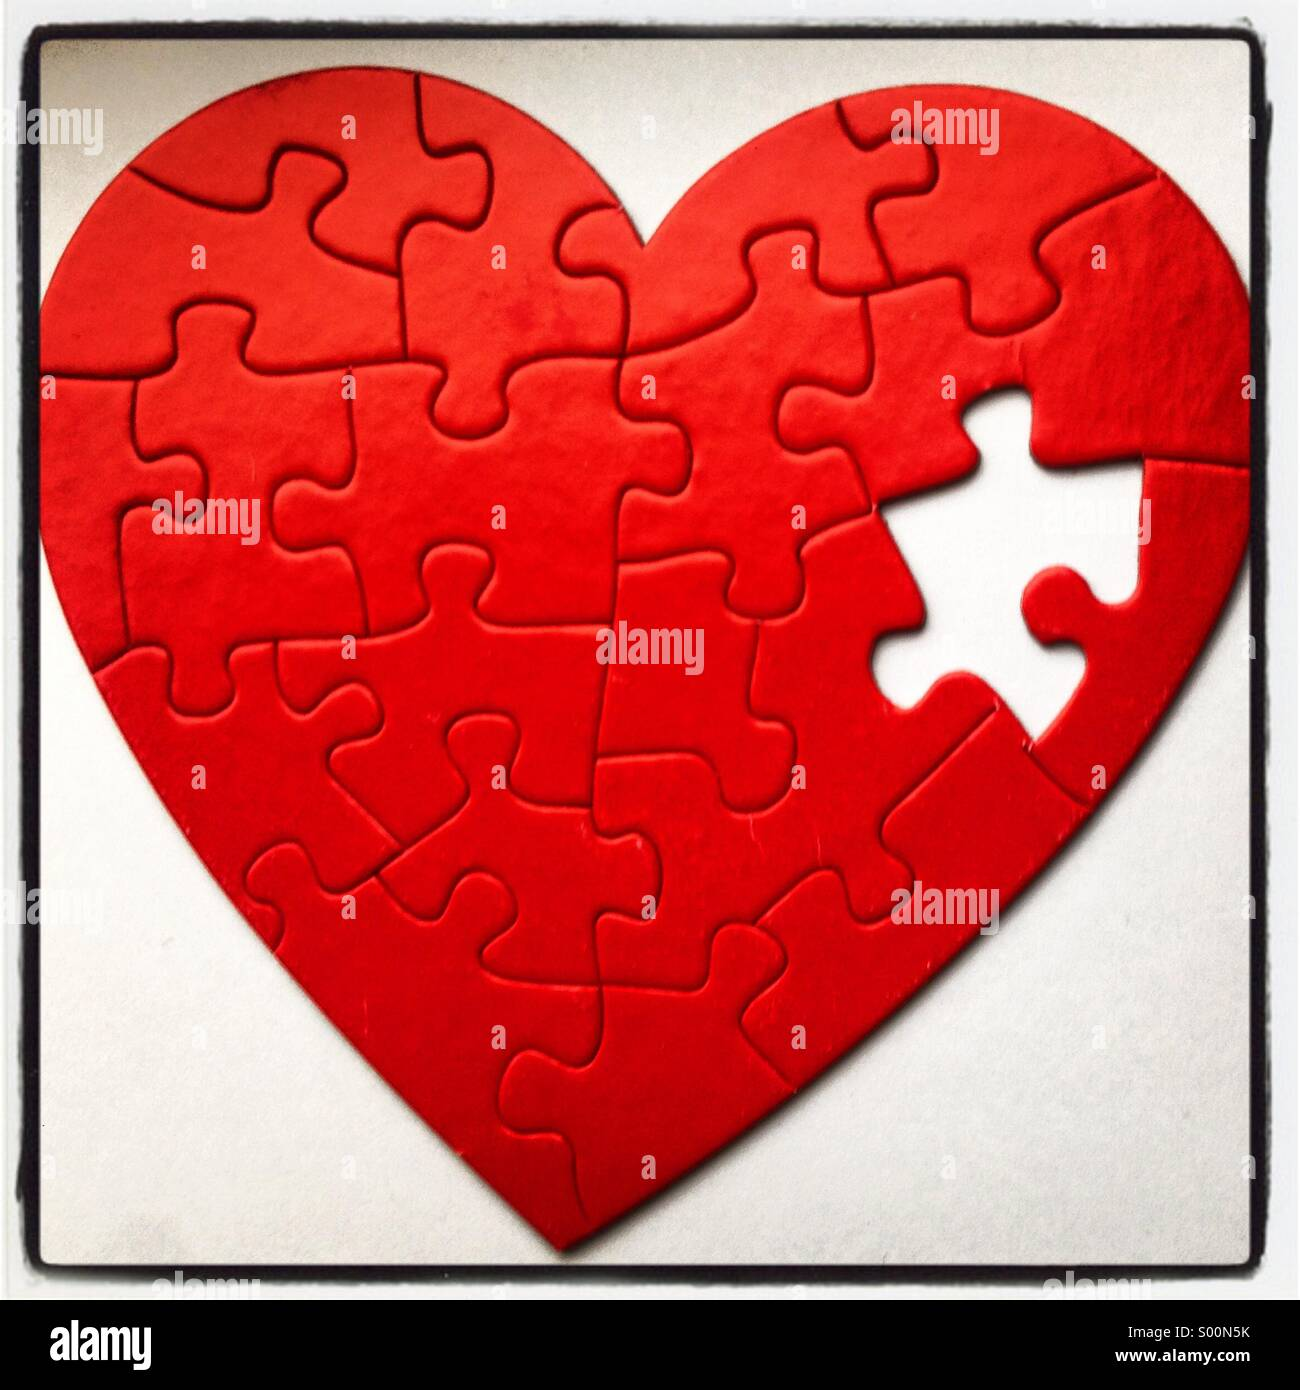 Incomplete heart shaped puzzle. - Stock Image